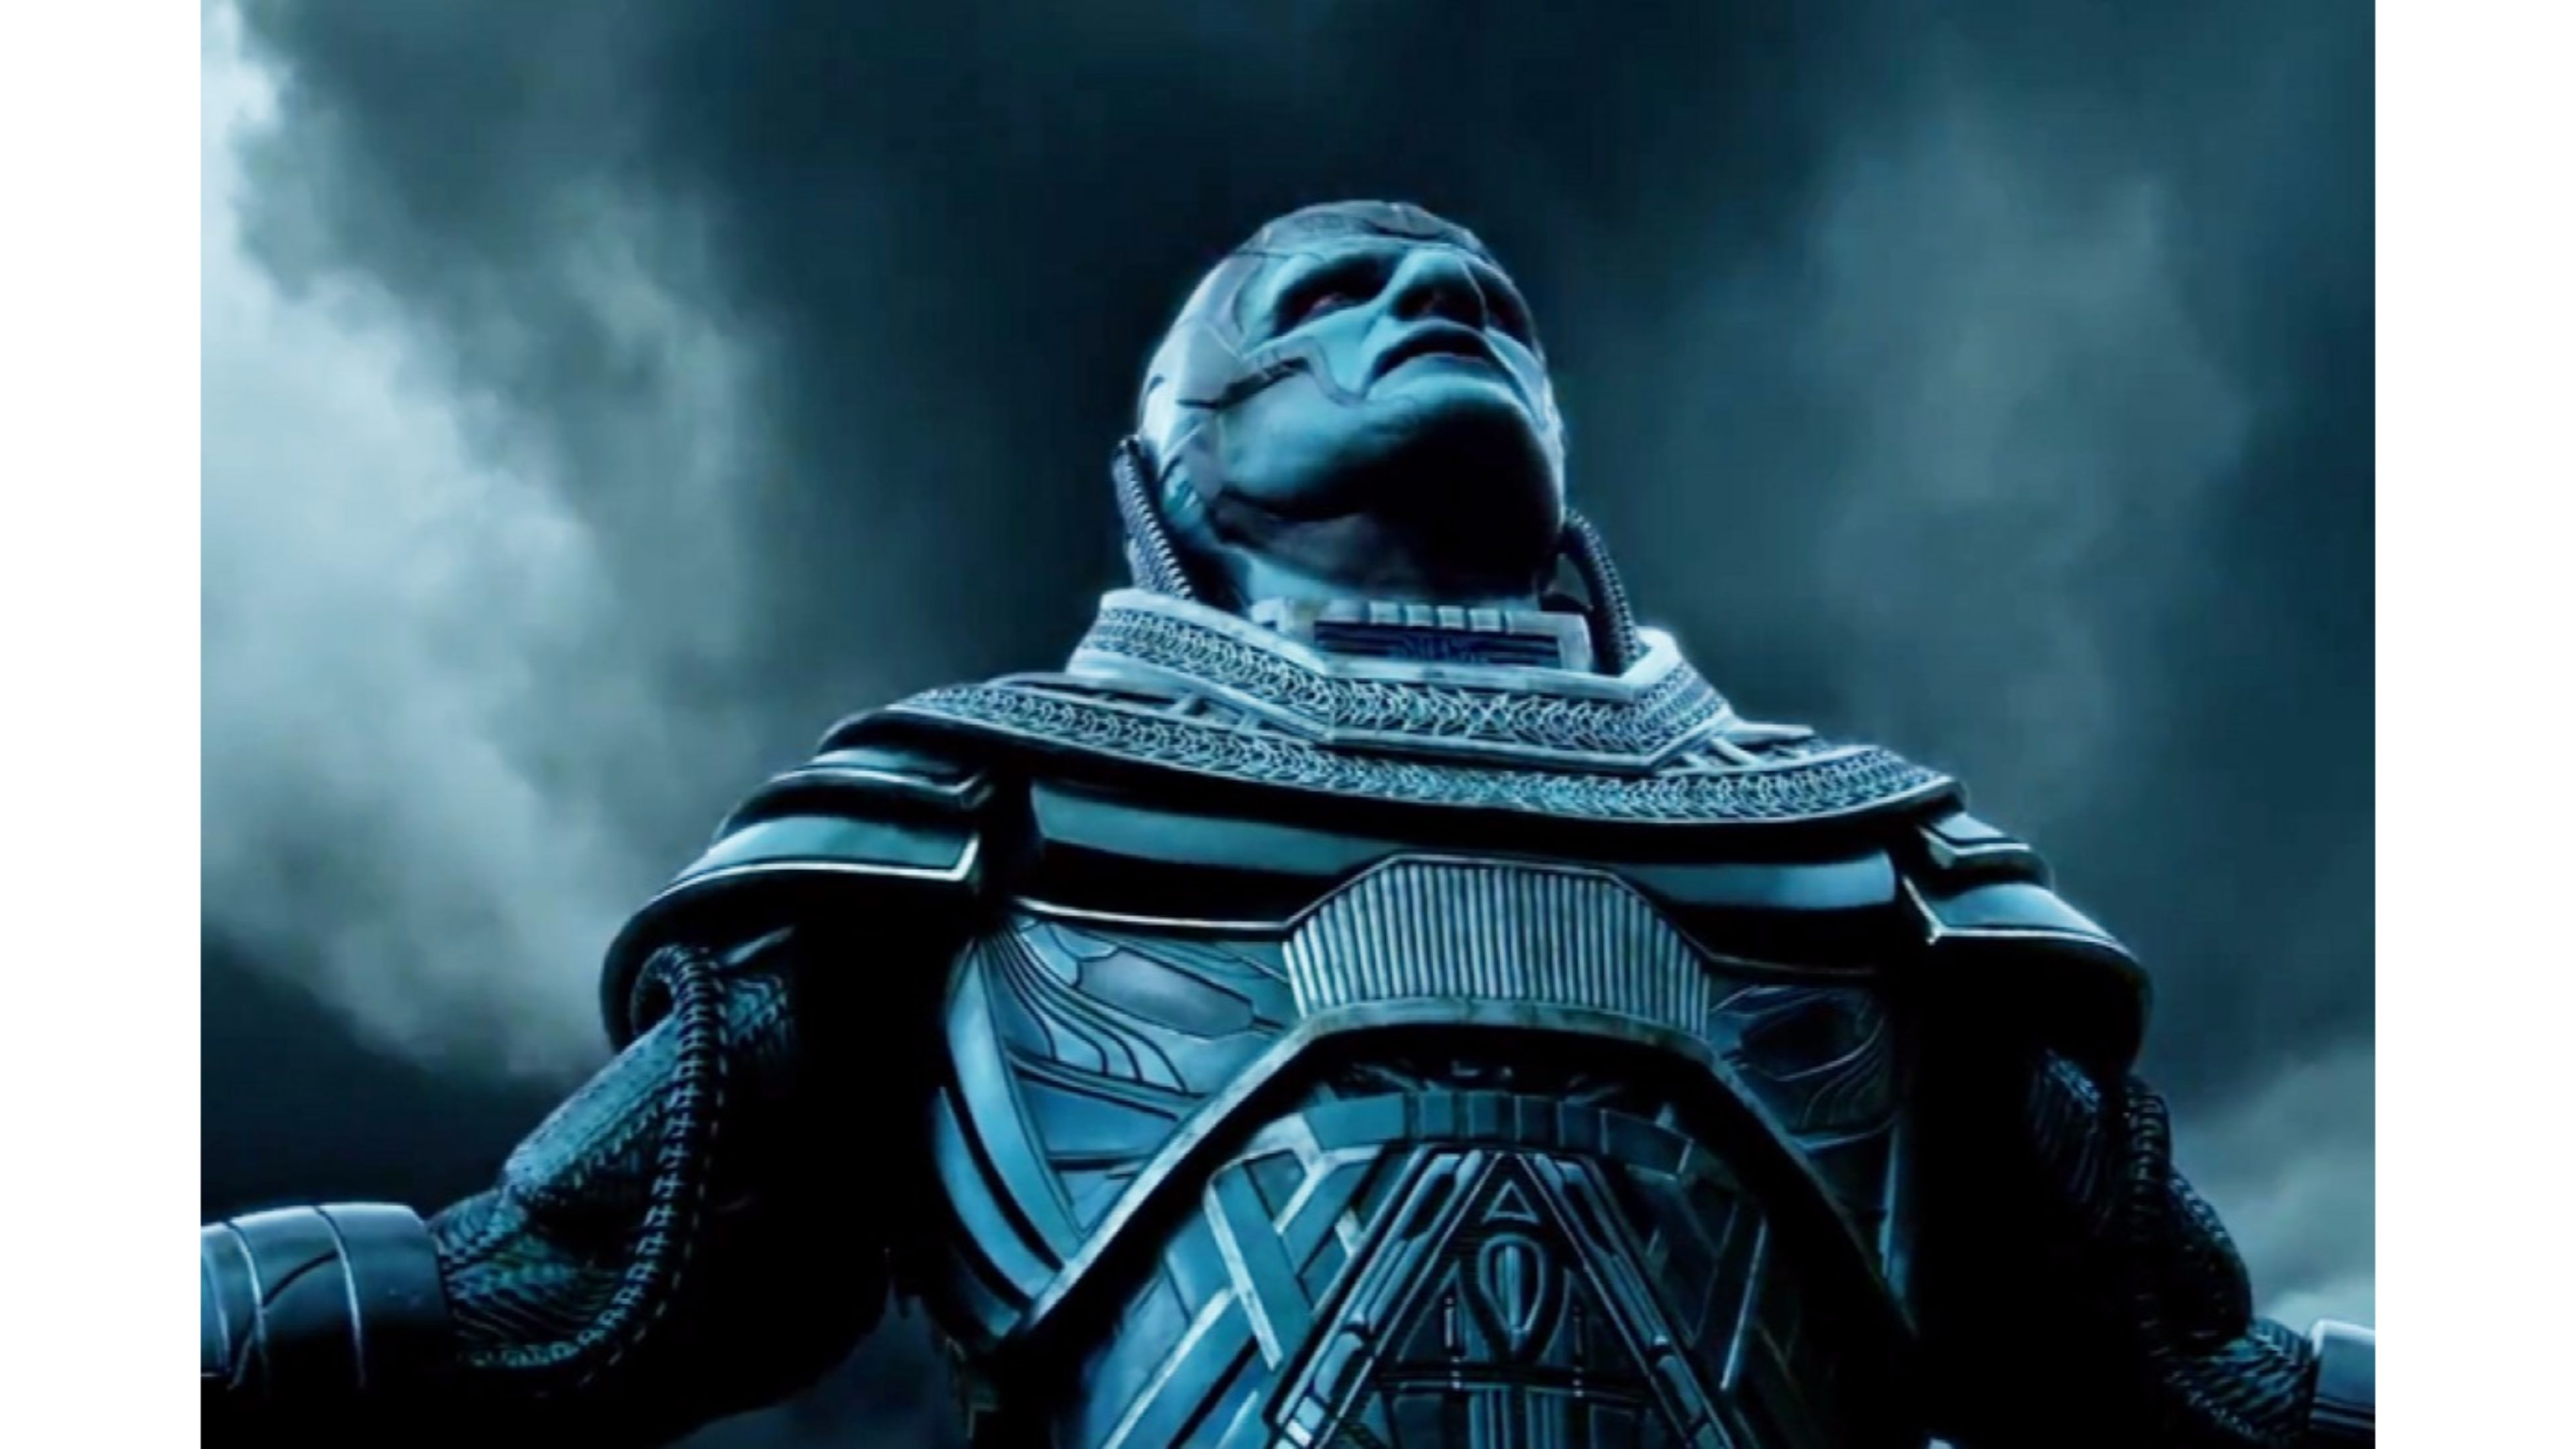 Other Collections of X men Apocalypse Wallpaper 3840x2160